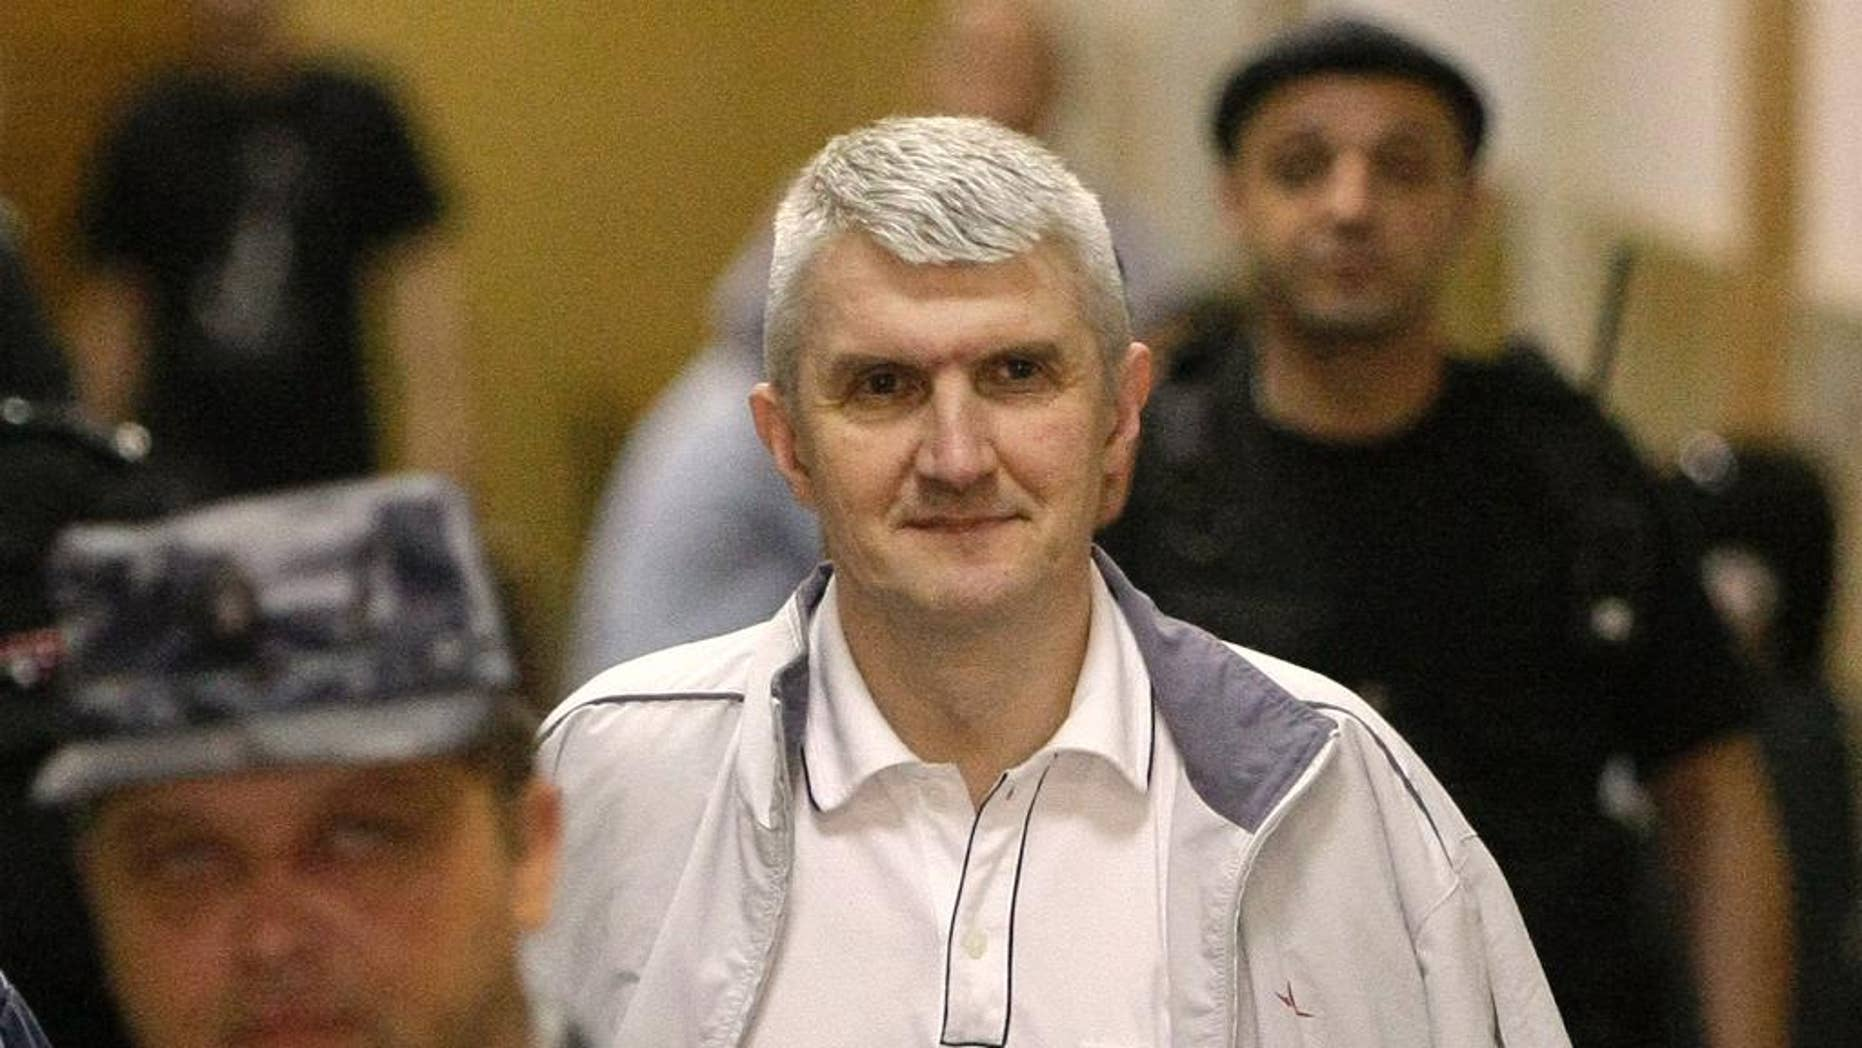 FILE - In this June 3, 2011 file photo, former Yukos CEO Mikhail Khodorkovsky's co-defendant Platon Lebedev, surrounded by guards, walks to a courtroom in Moscow. The Russian state has won three court cases recently in France that had entangled rocket builders in Yukos' efforts to recover money it says the Kremlin unfairly appropriated. Four more rulings are expected Friday April 15, 2016 in Paris. (AP Photo/Misha Japaridze, file)